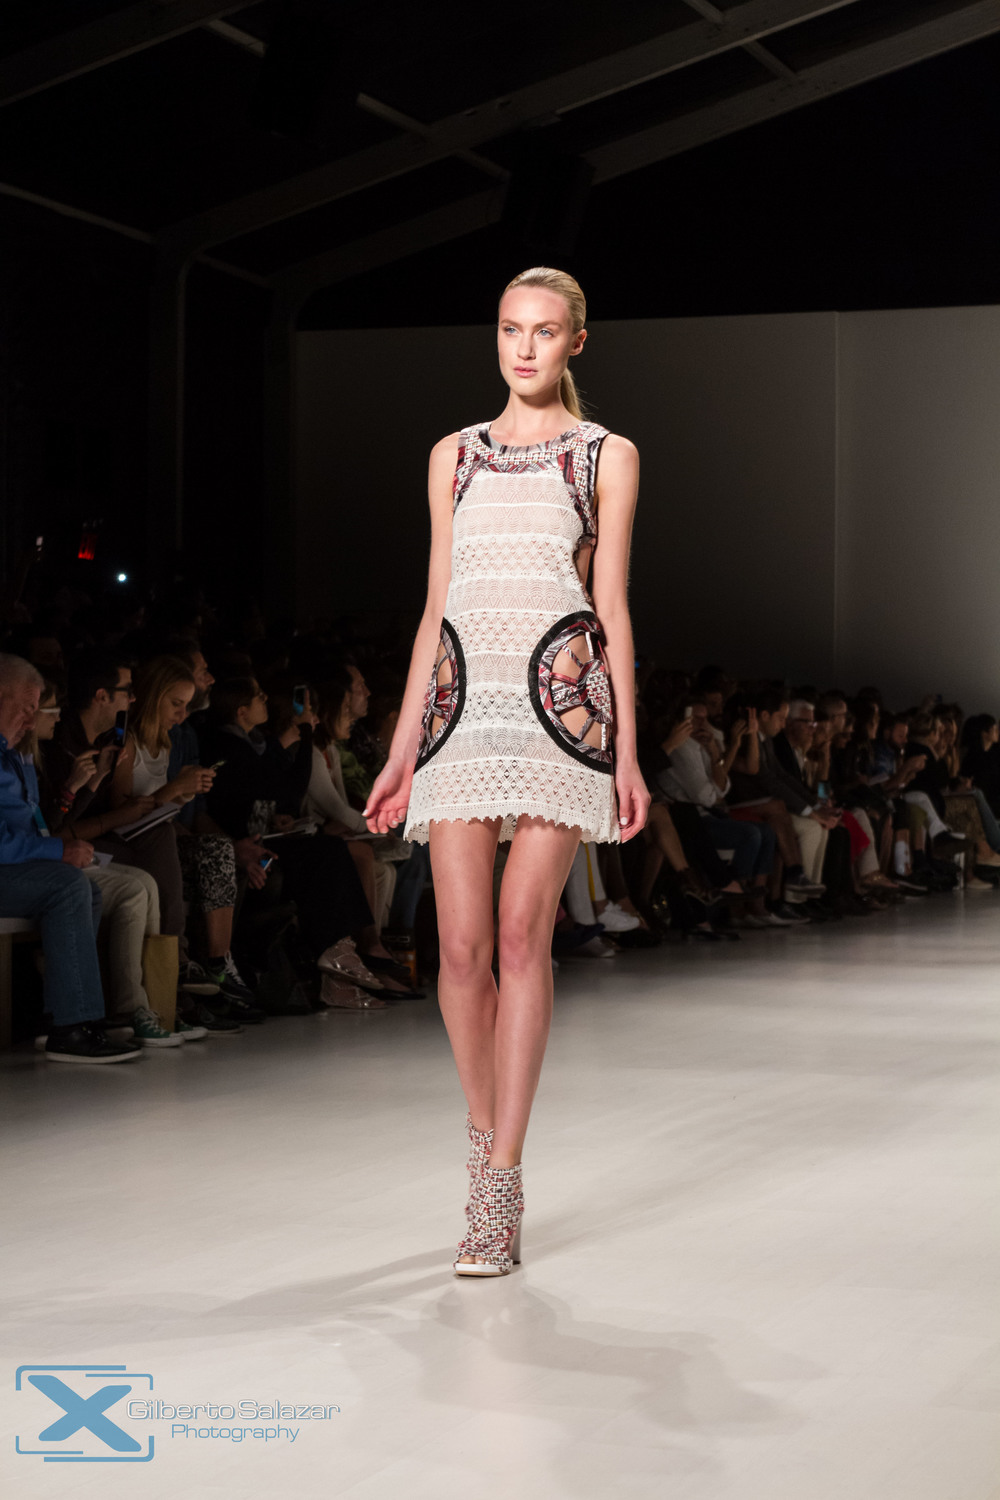 New York Fashion Week 2014 by Gilberto Salazar-11.jpg